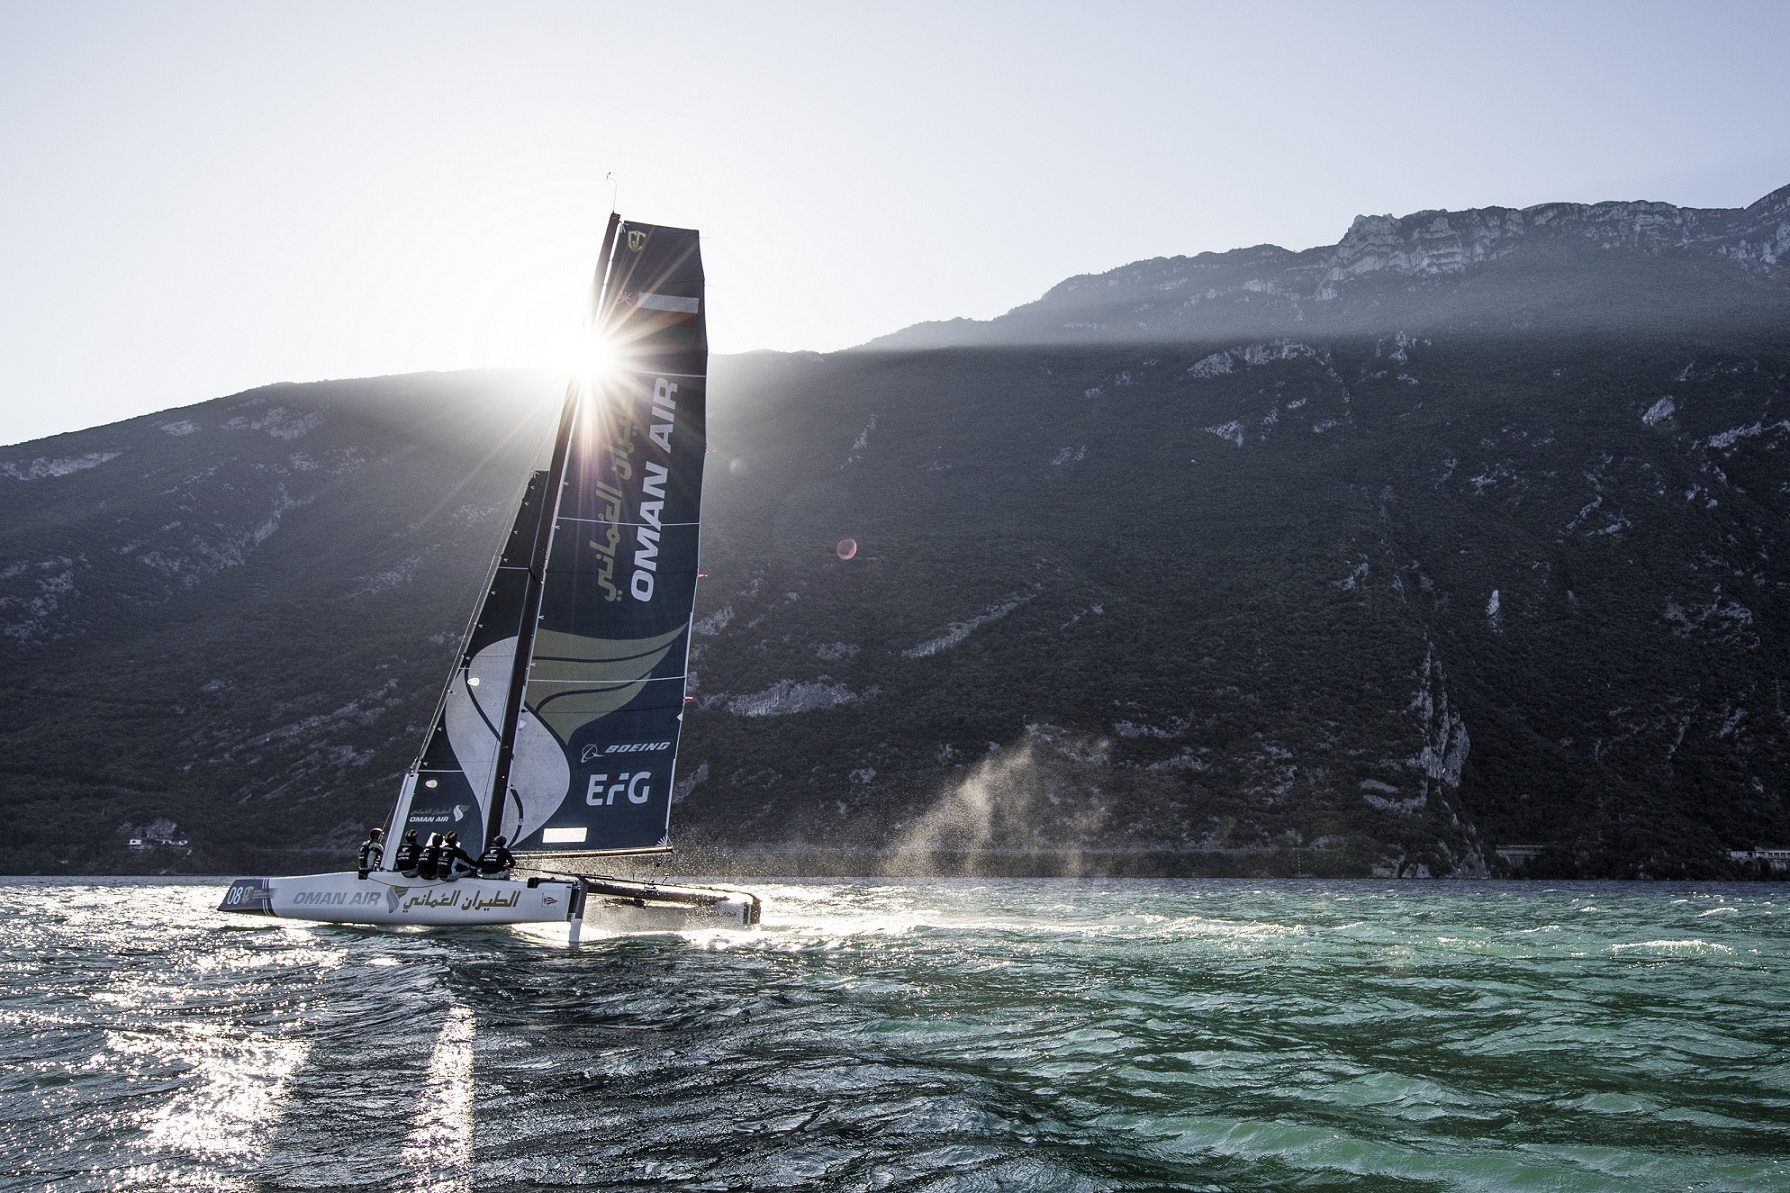 Team Oman Air puts in a world class performance on Lake Garda to boost their Extreme Sailing Series season